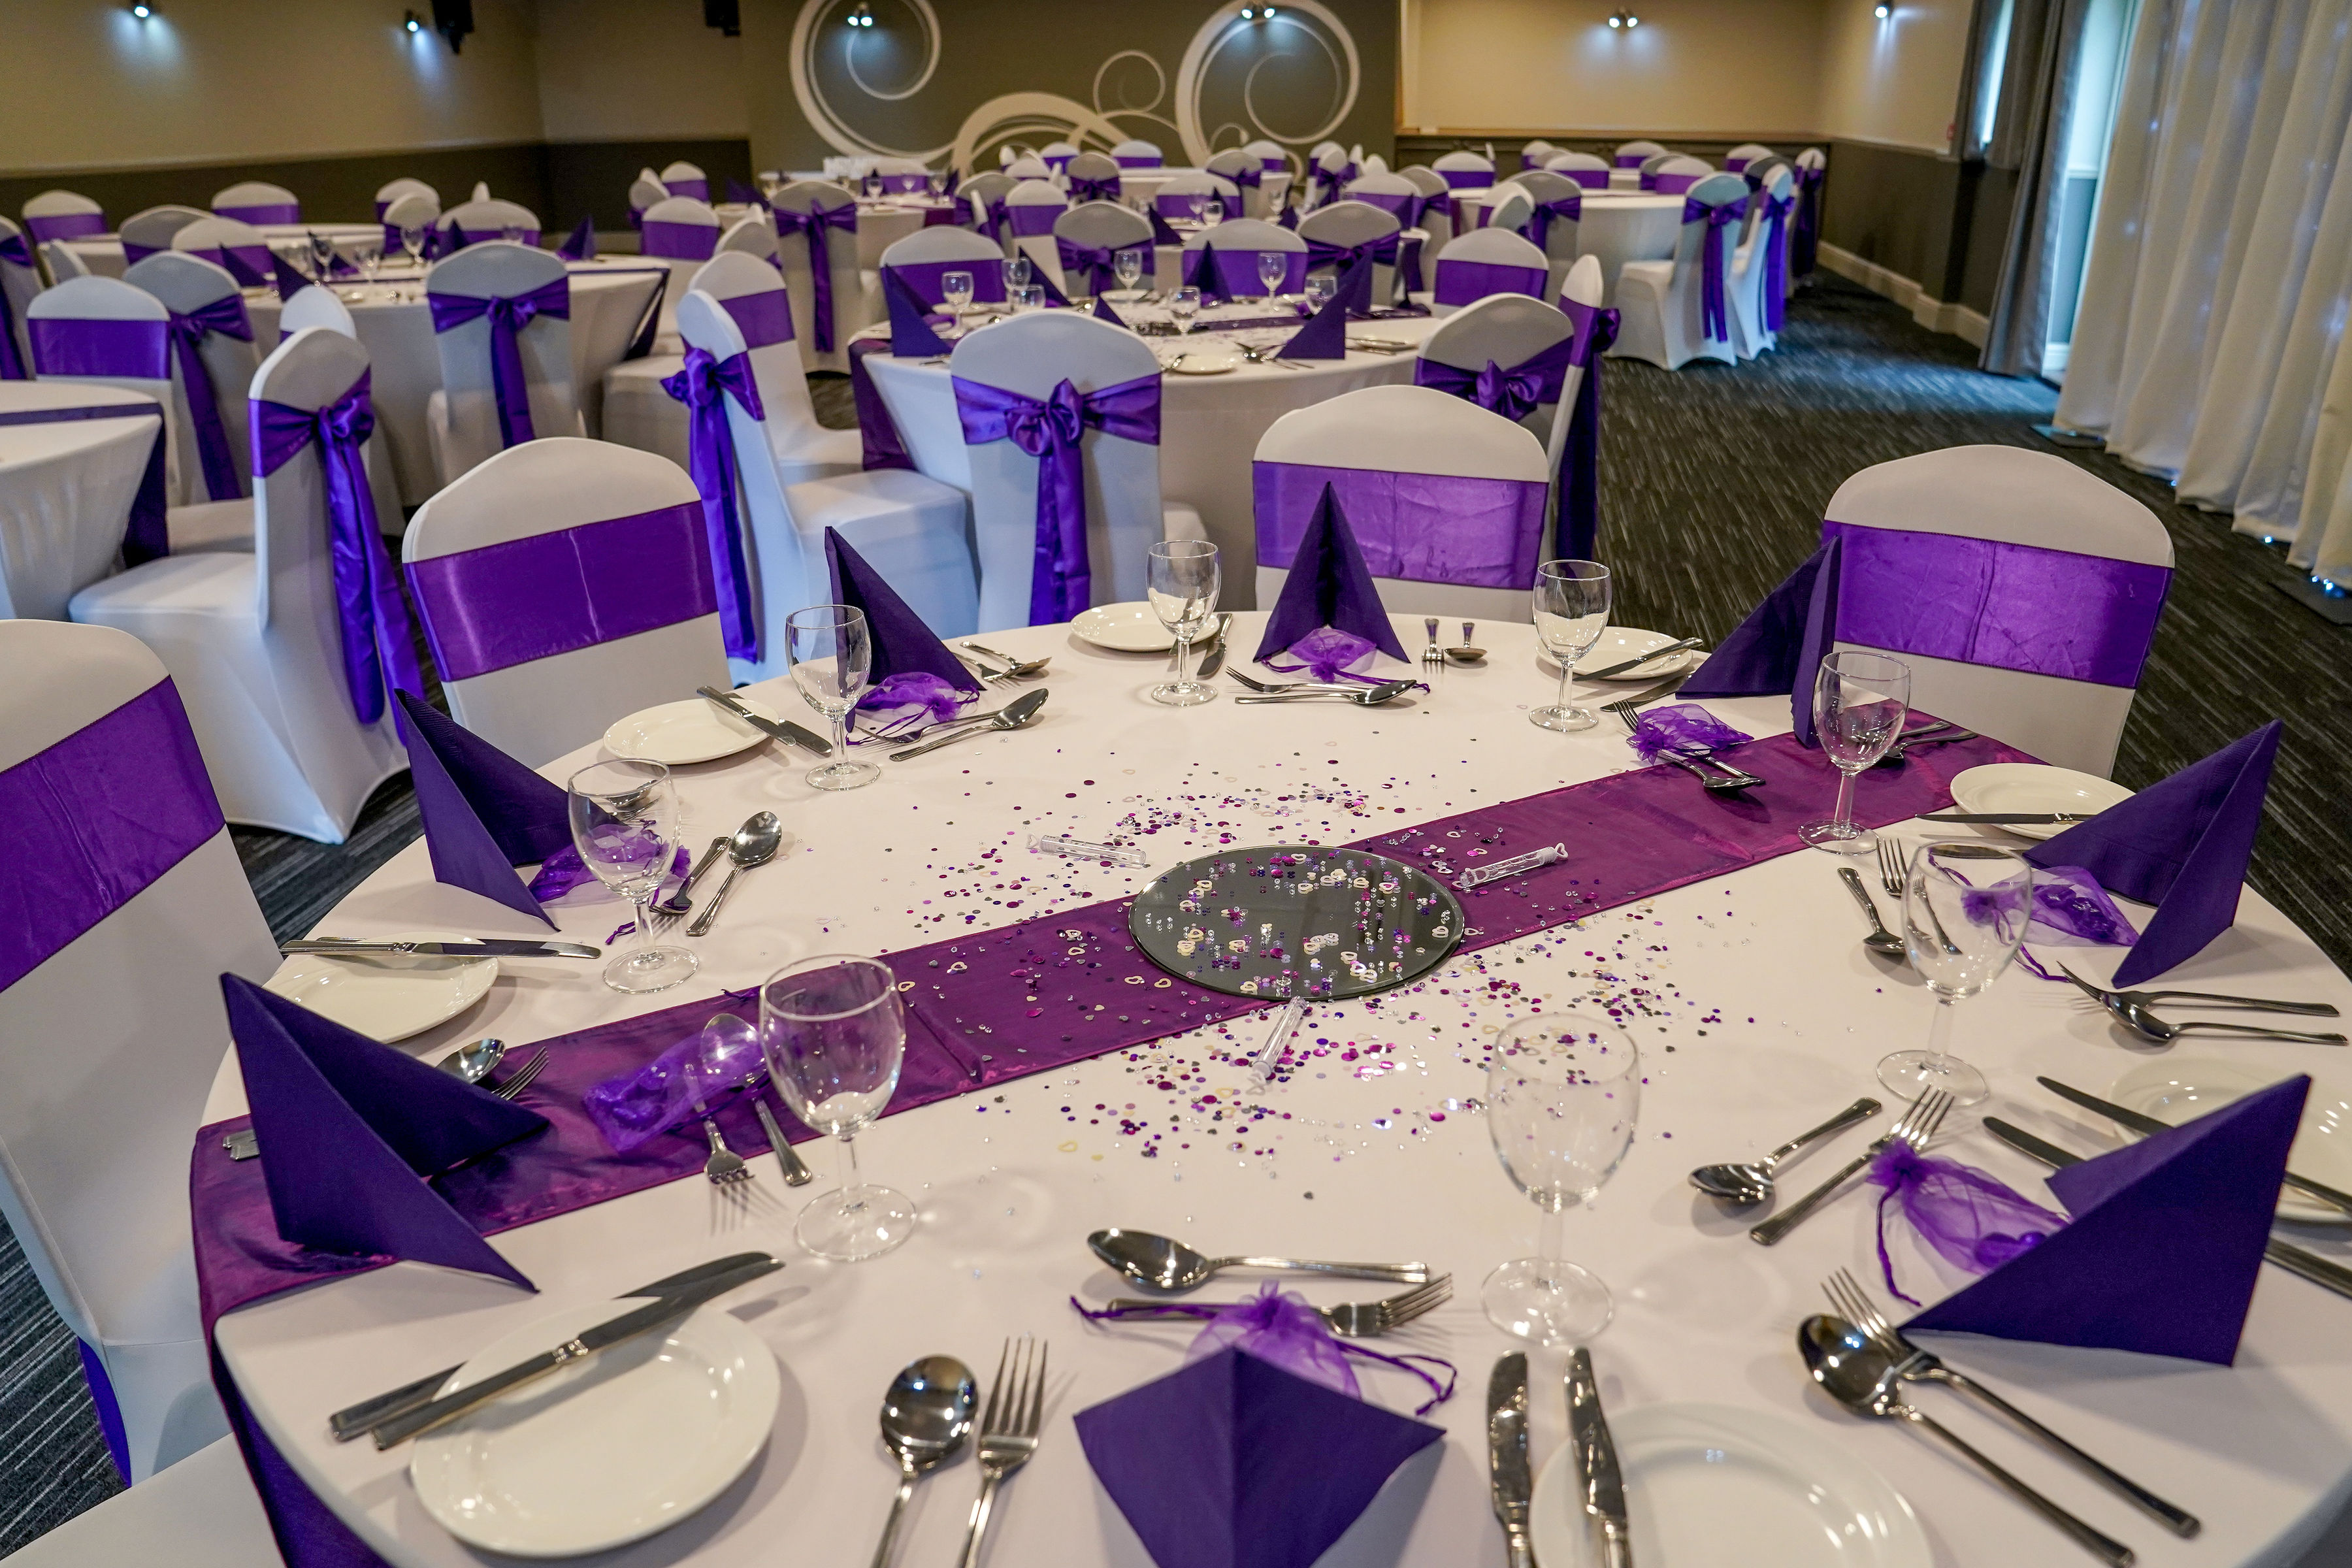 Table confetti and runners add impact